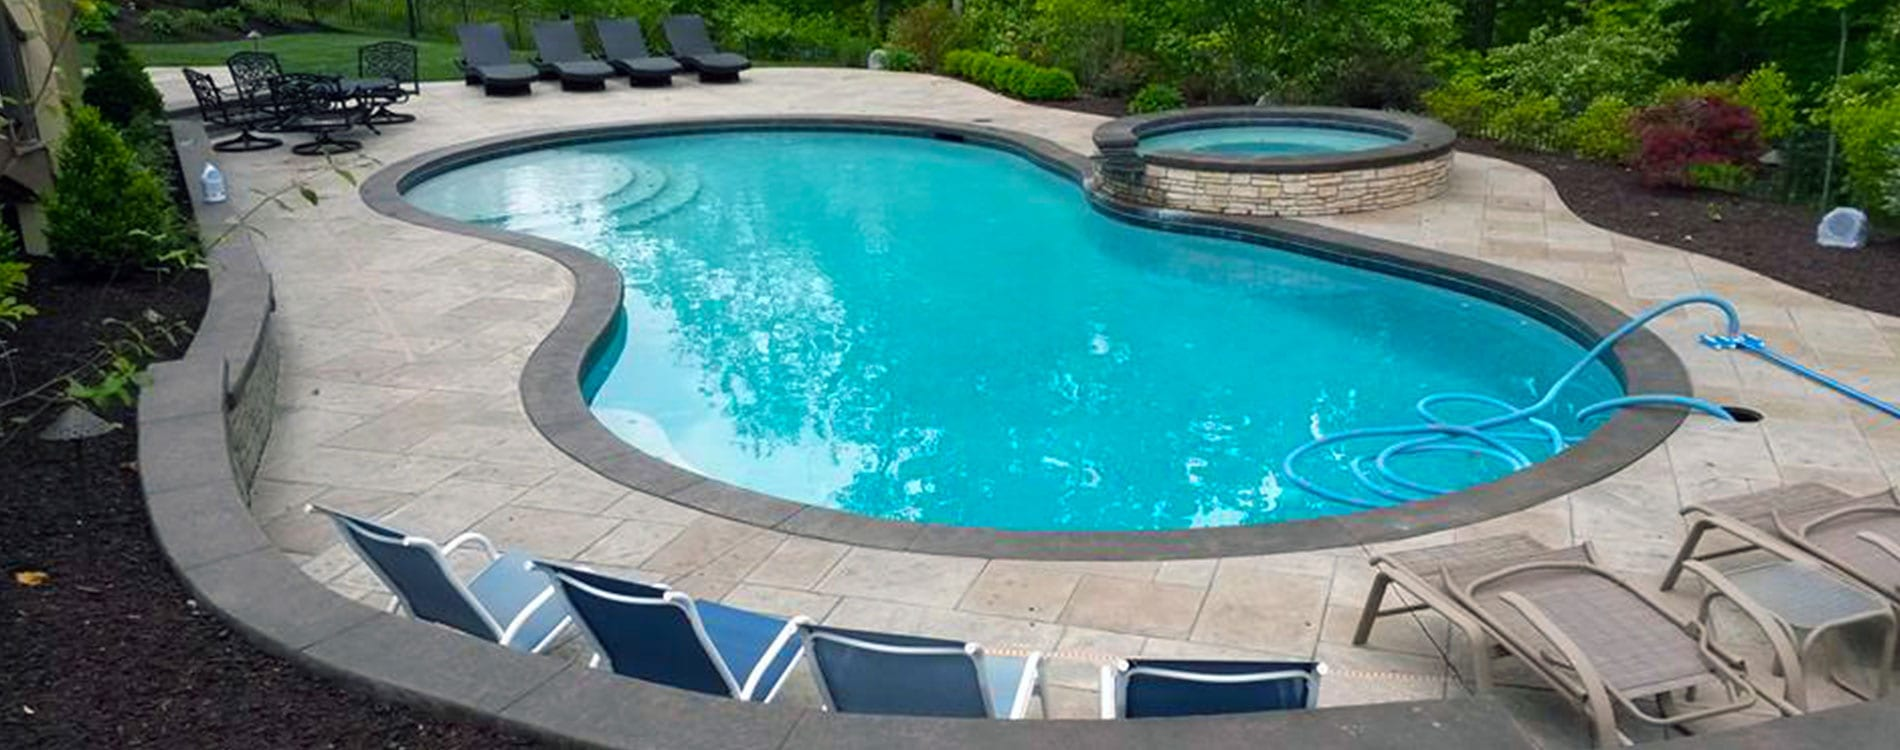 Indiana Custom Pool Builder